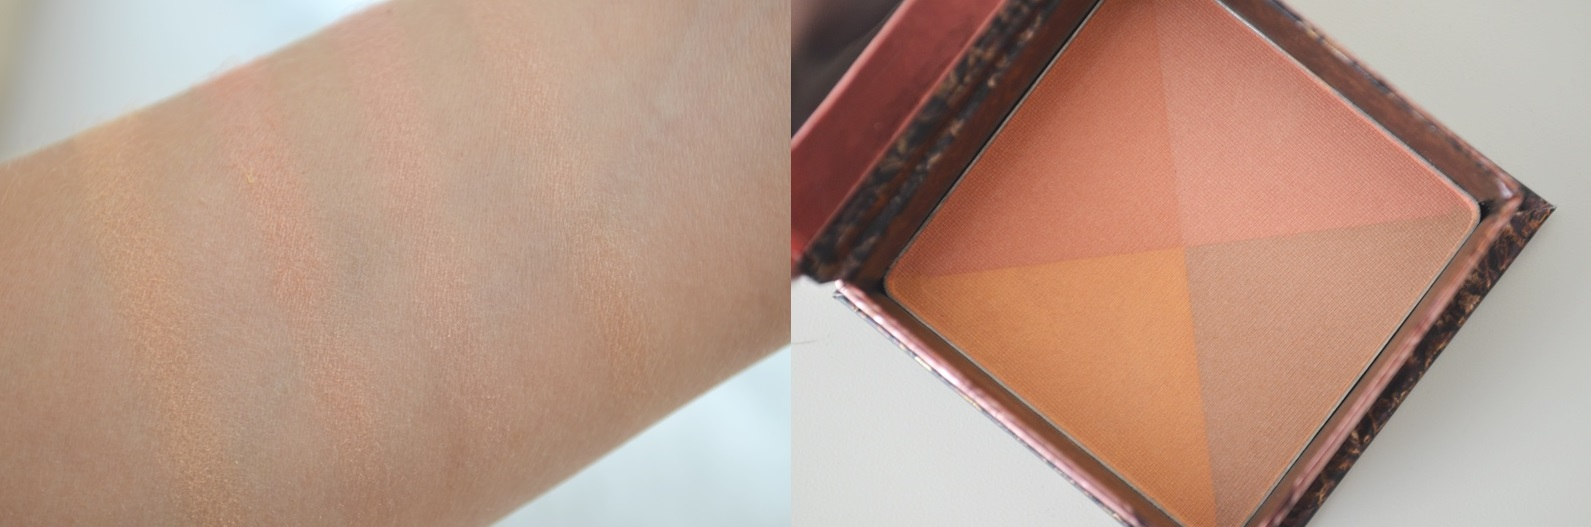 Compilatie 1 - New in! Benefit Sugarbomb Blush/Highlighter - Review